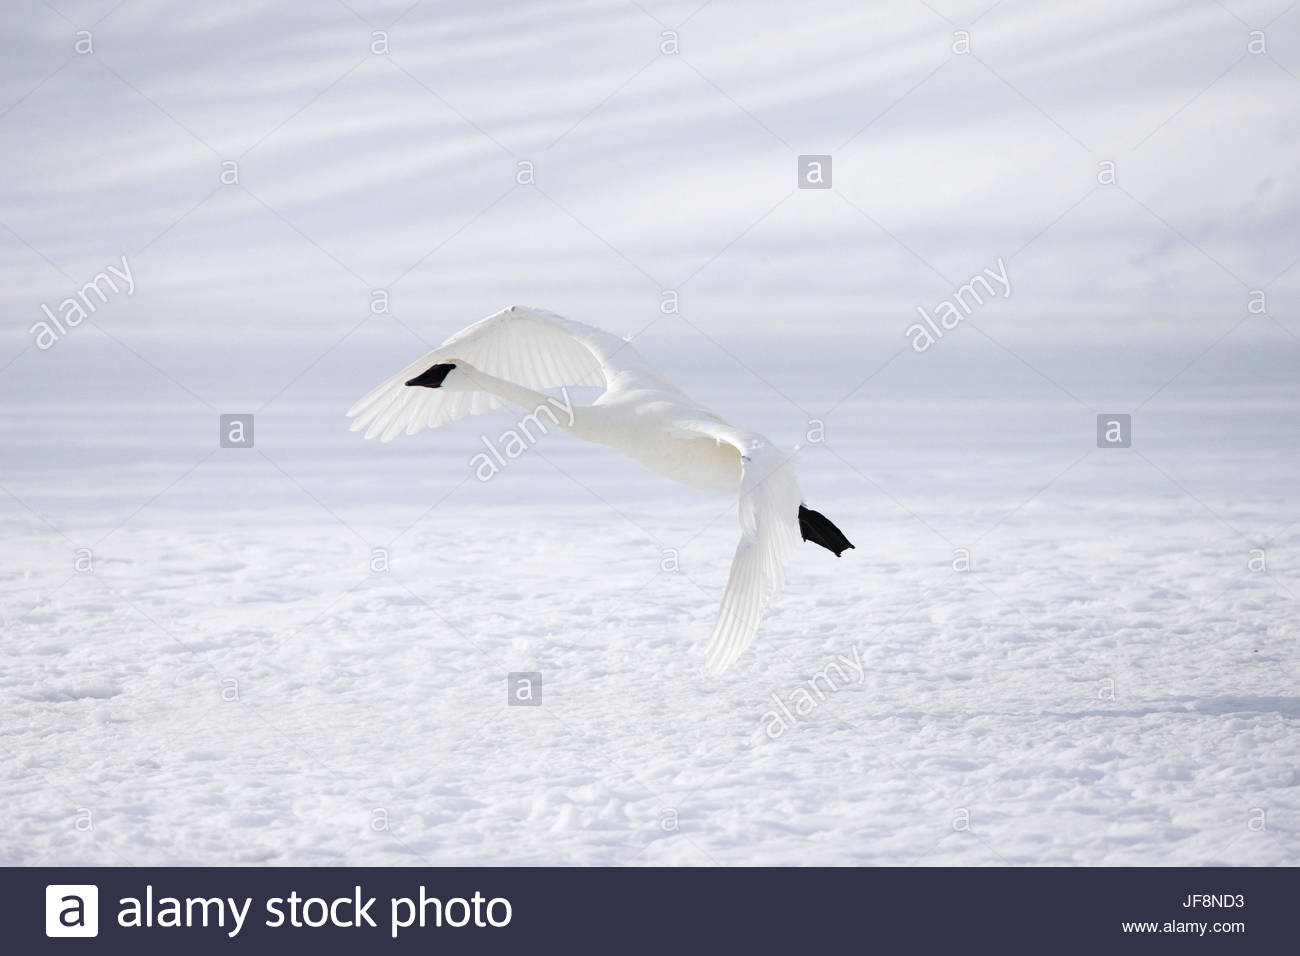 A tundra swan, Cygnus columbianus, camouflaged in its snowy environment. Stock Photo